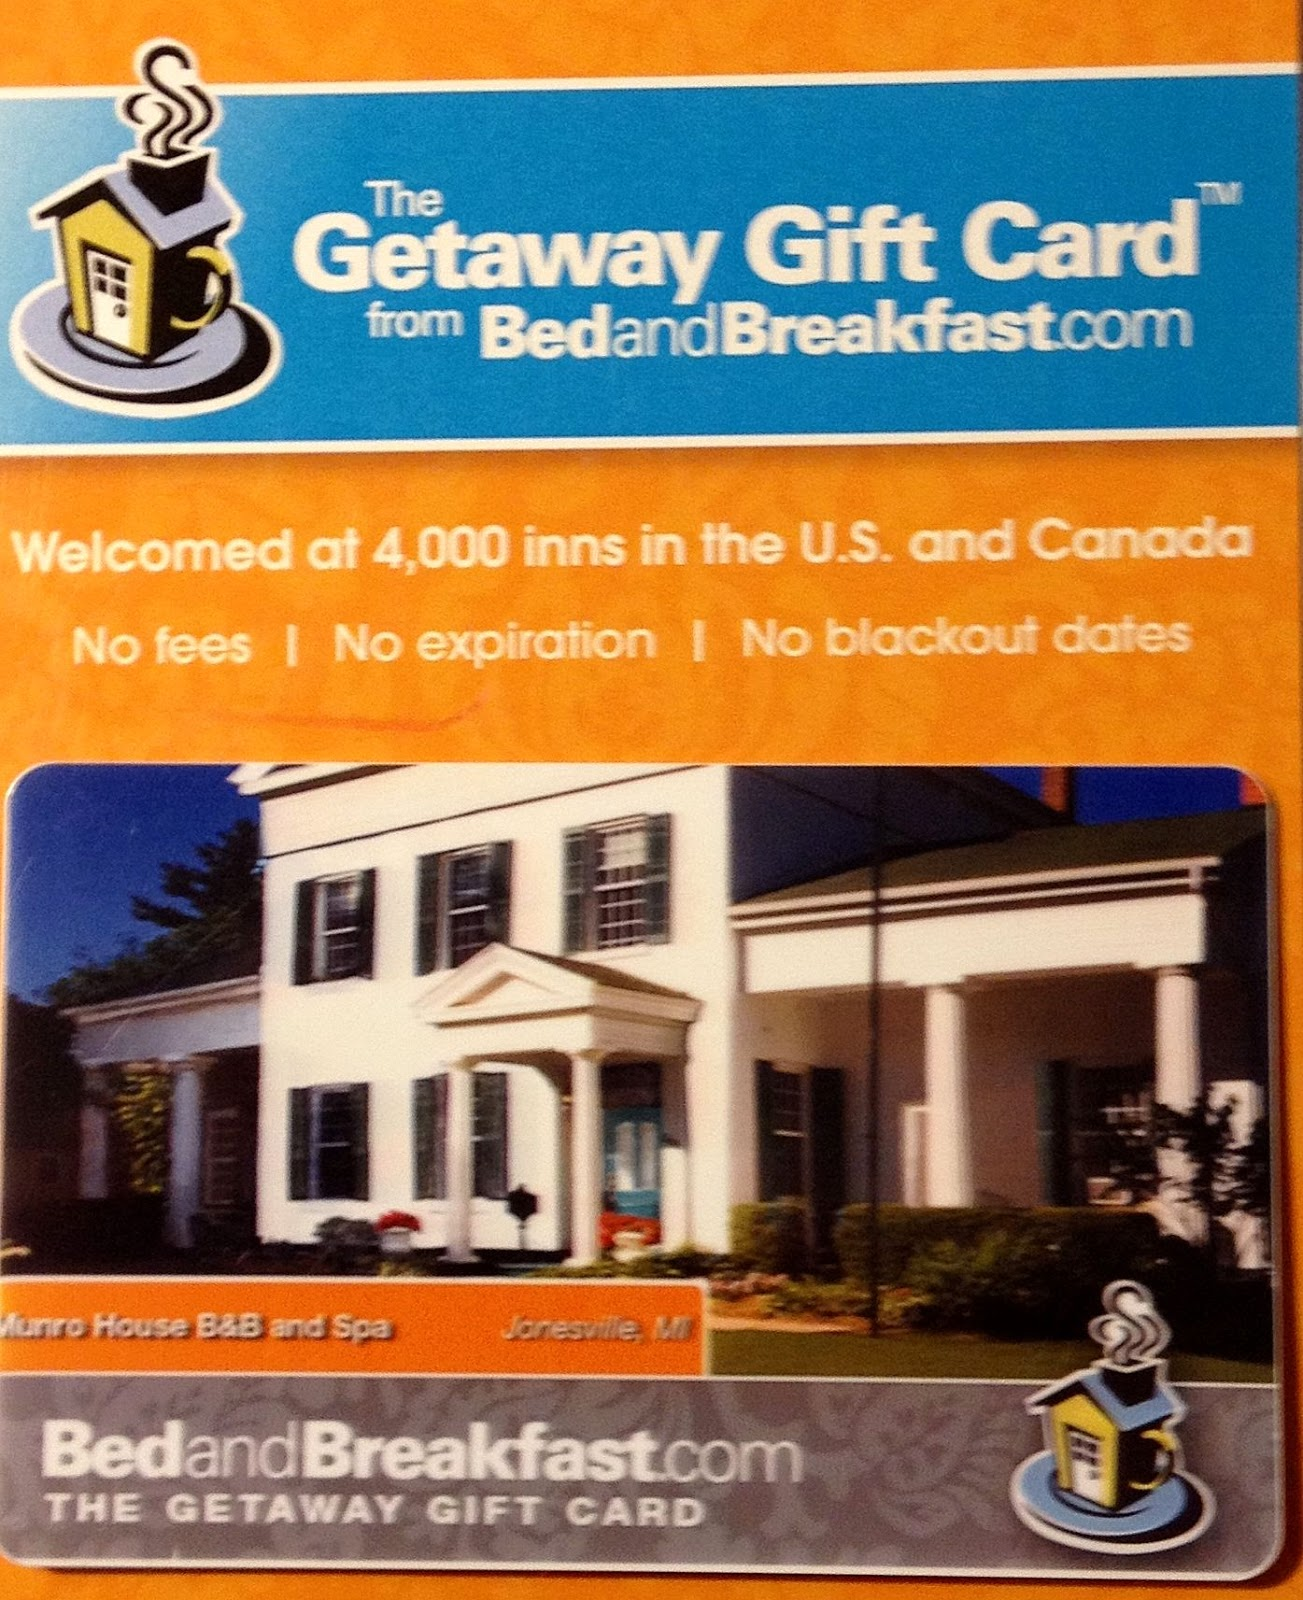 Bed and Breakfast Gift Card for Christmas